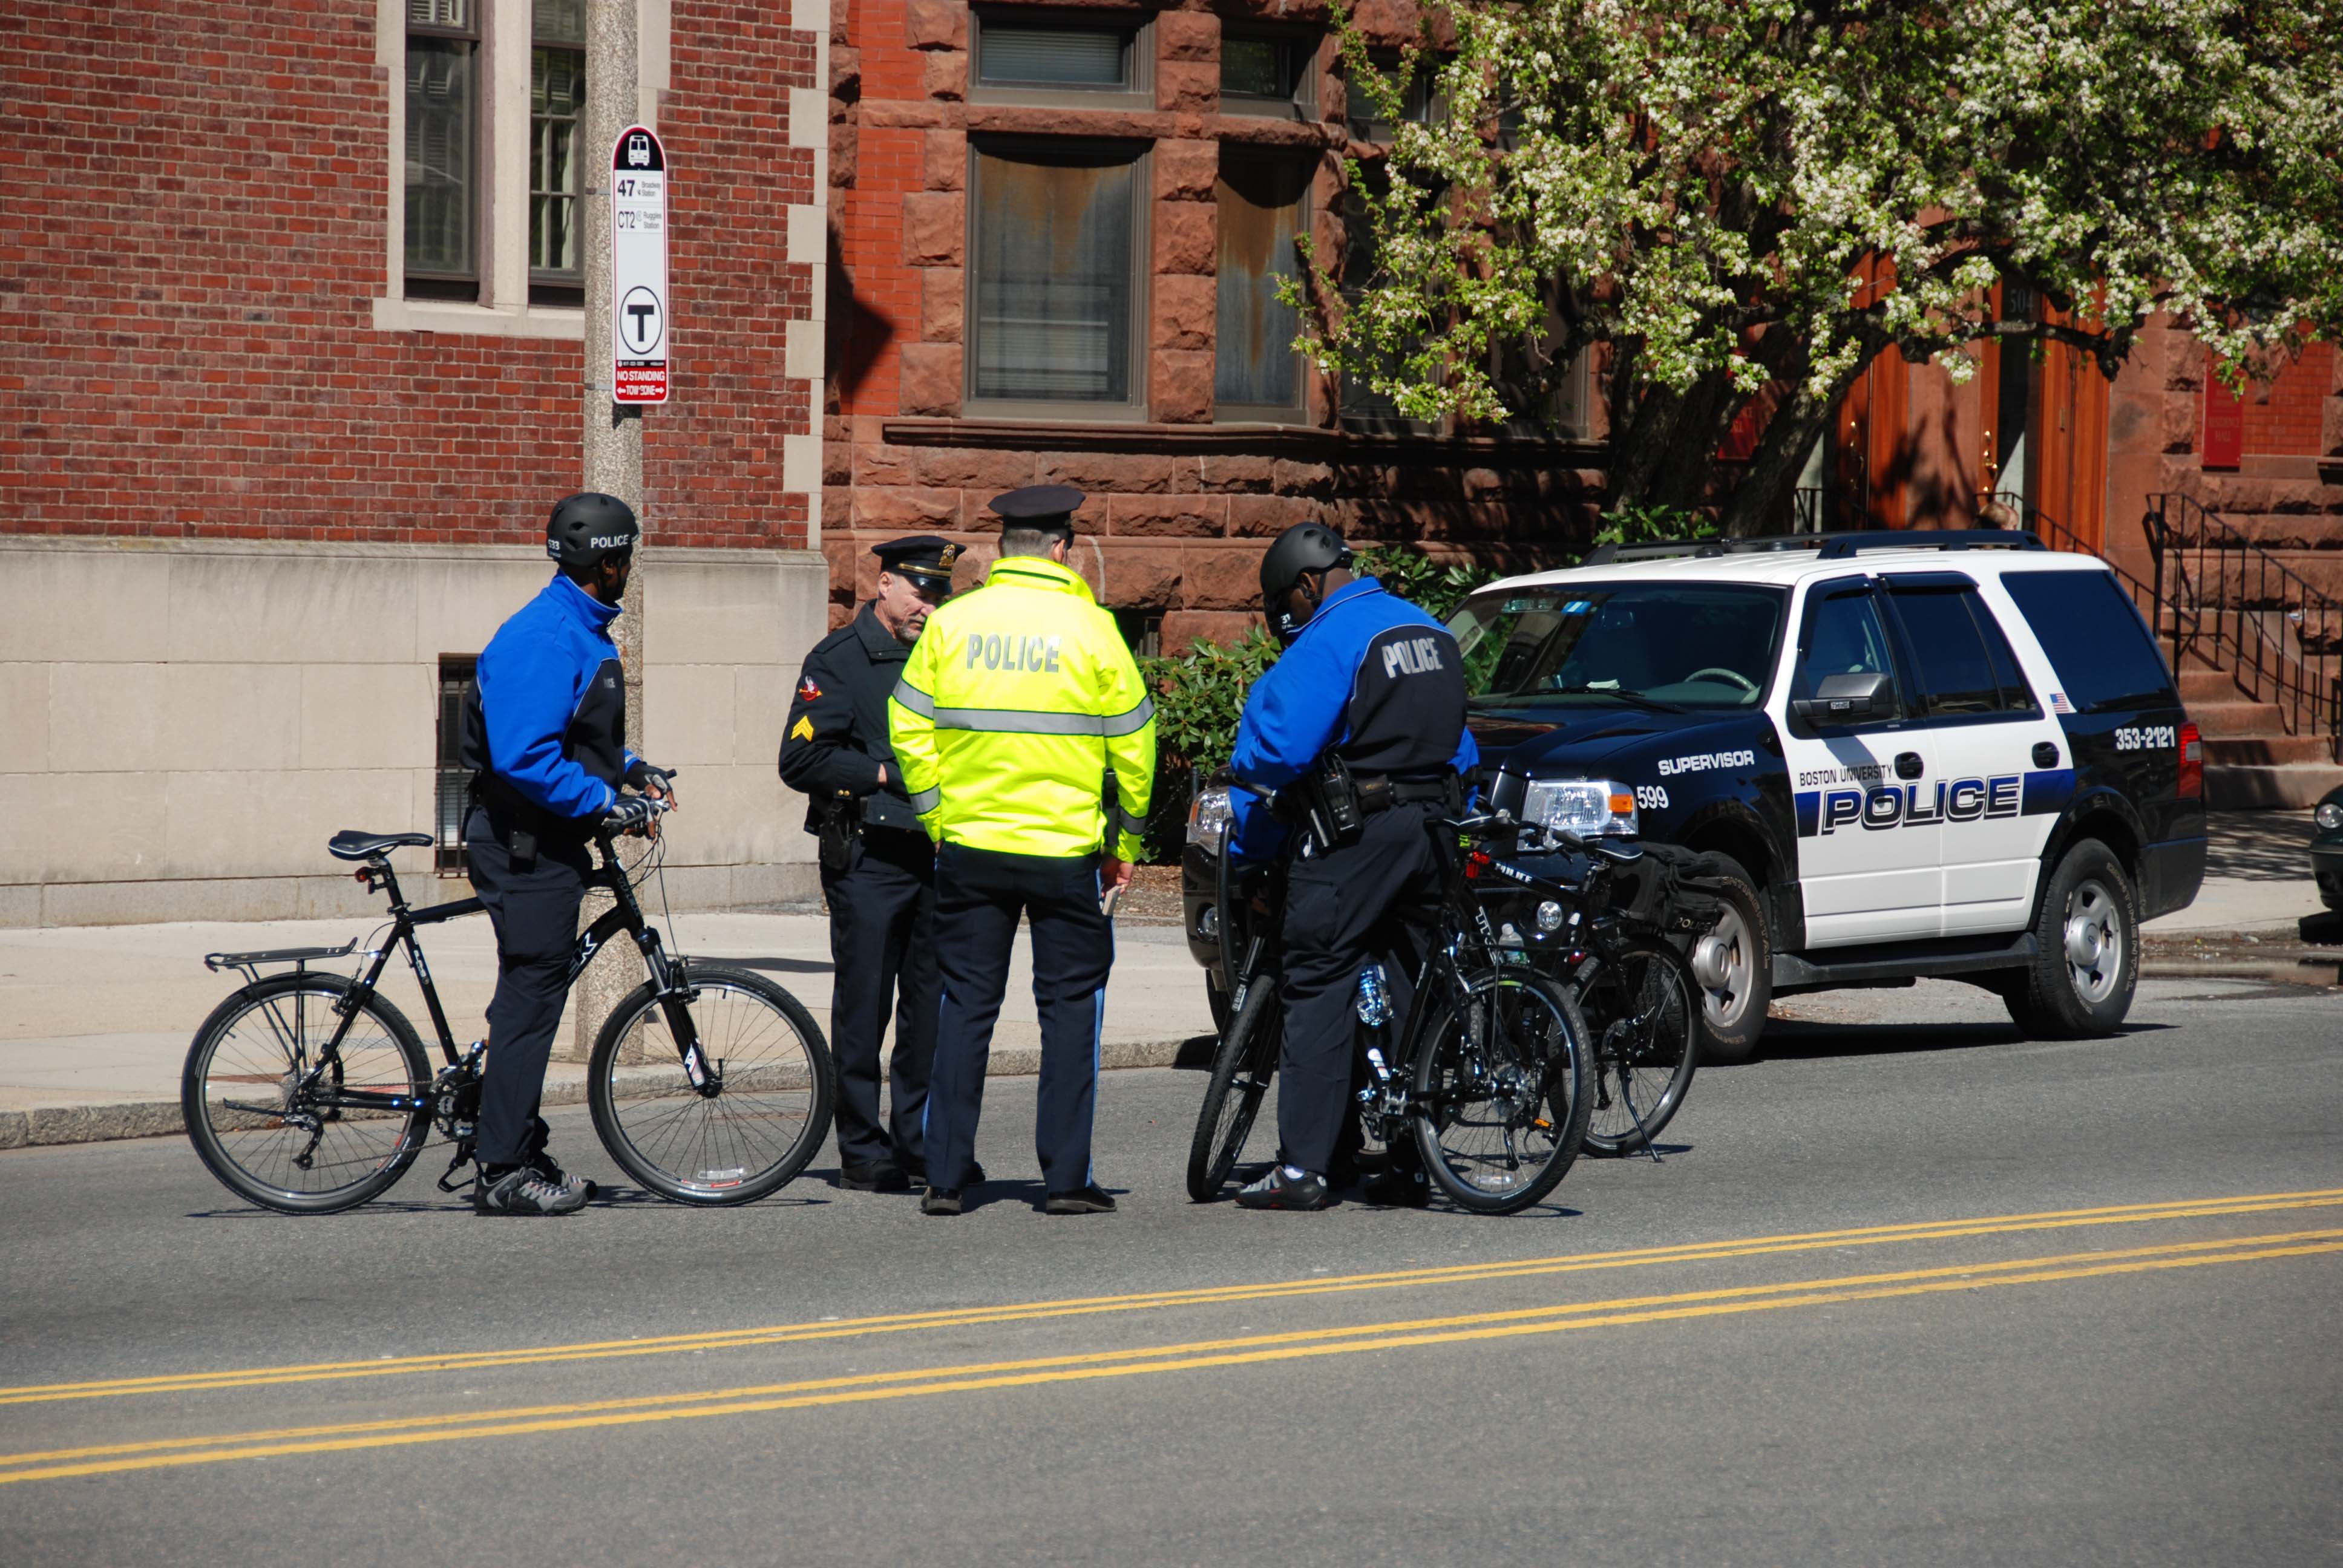 TWO-WHEELED JUSTICE: MODERN BICYCLE POLICING